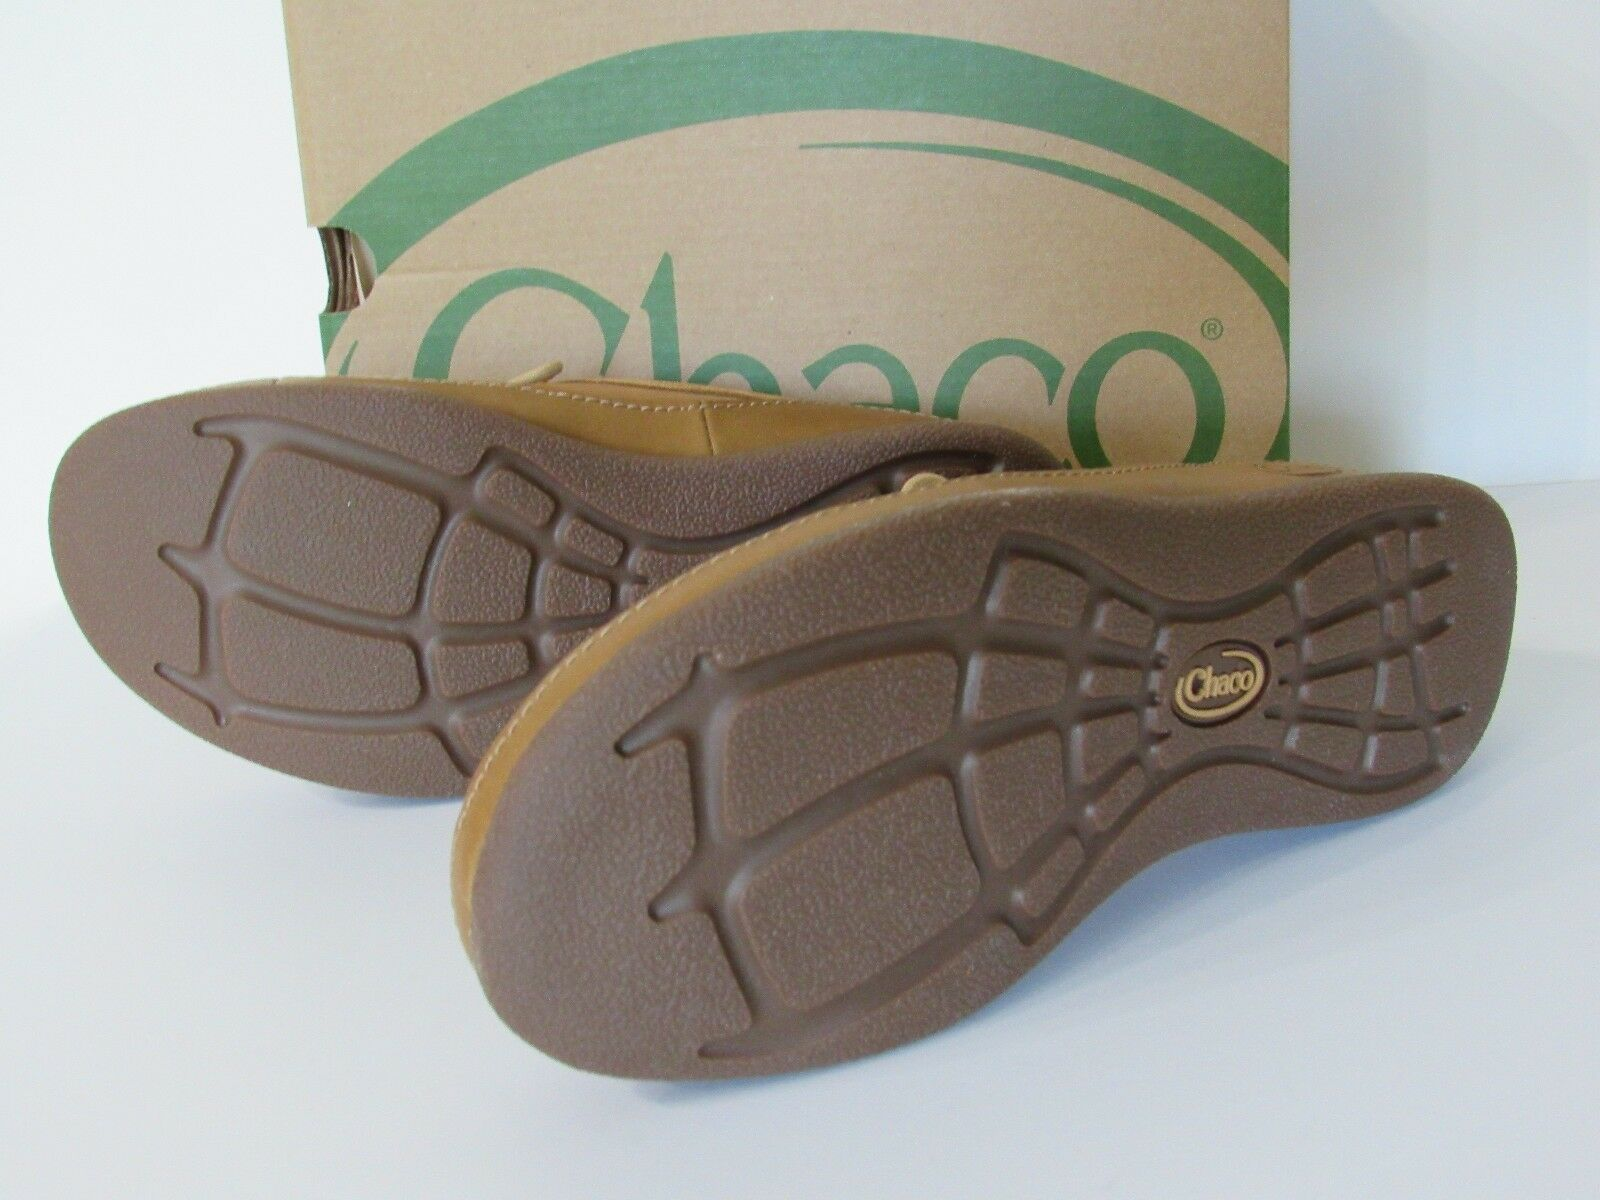 Chaco Pineland LUVSEAT Womens Tan Leather Lace Up Comfort Comfort Comfort shoes size 6.5 NEW 7f57ce